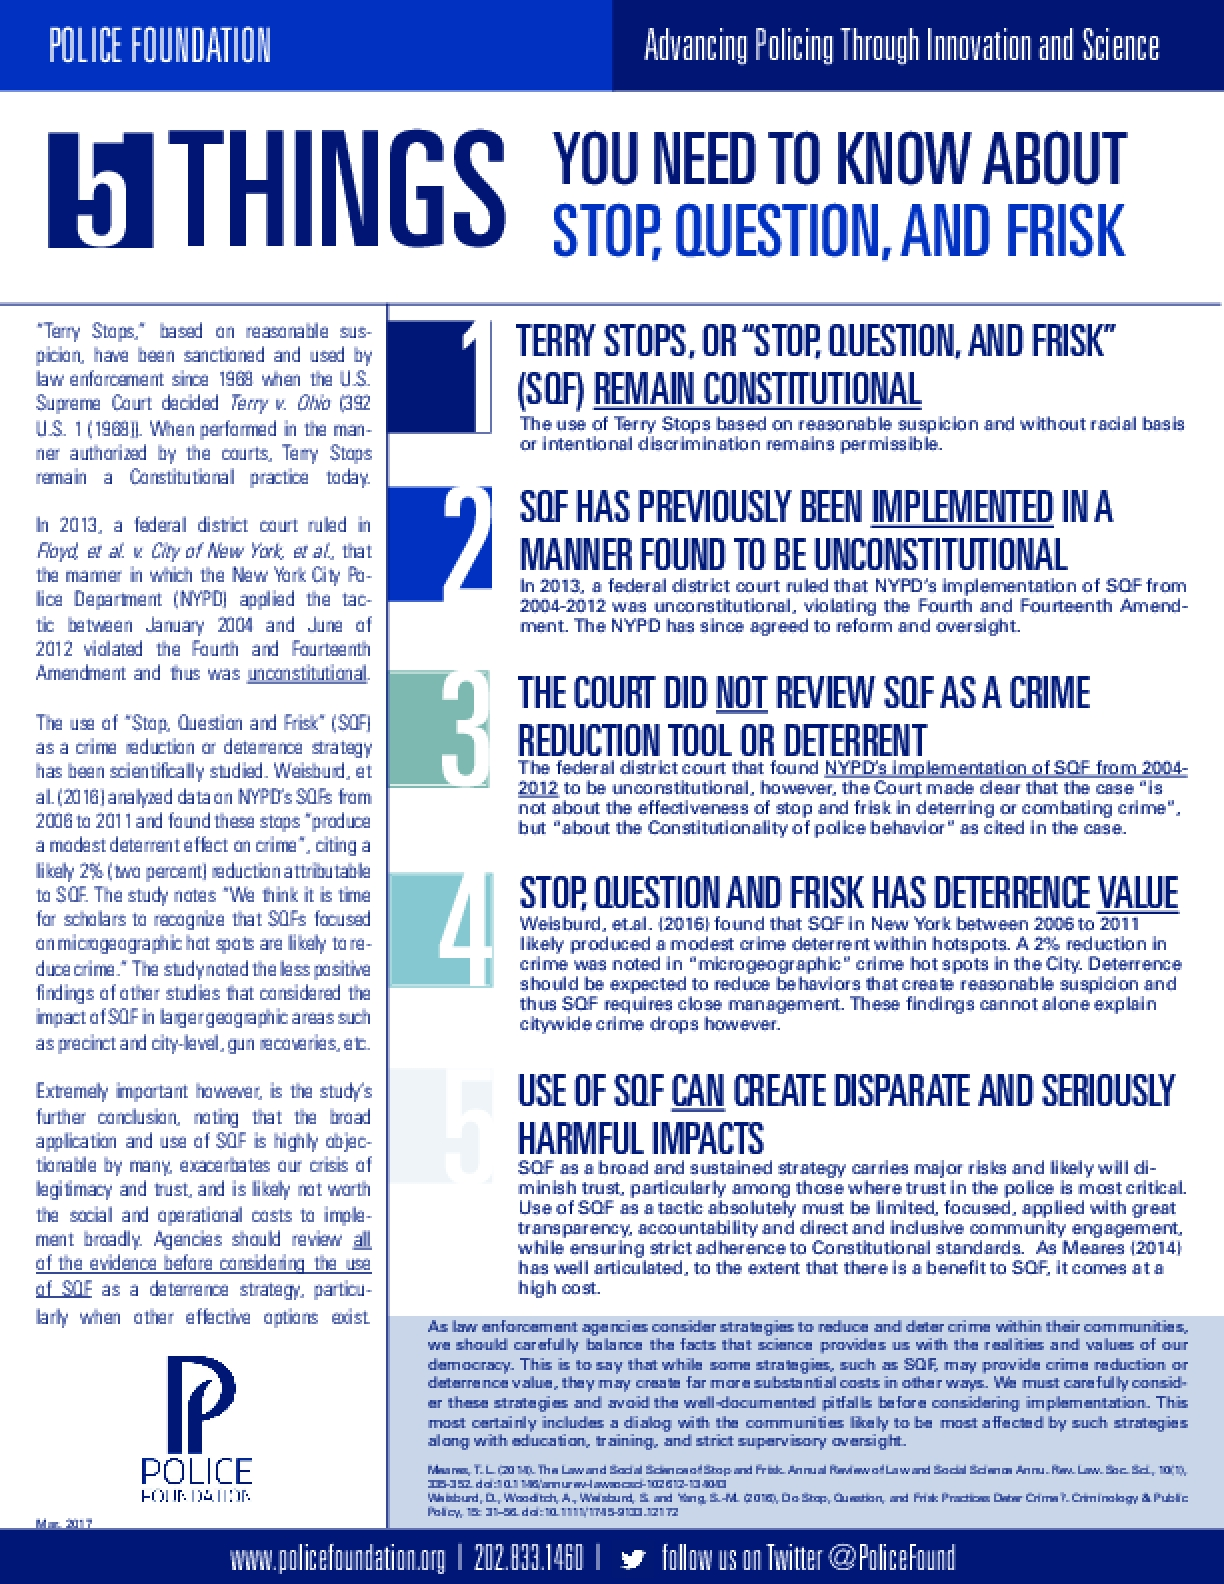 5 Things You Need to Know About Stop, Question, and Frisk